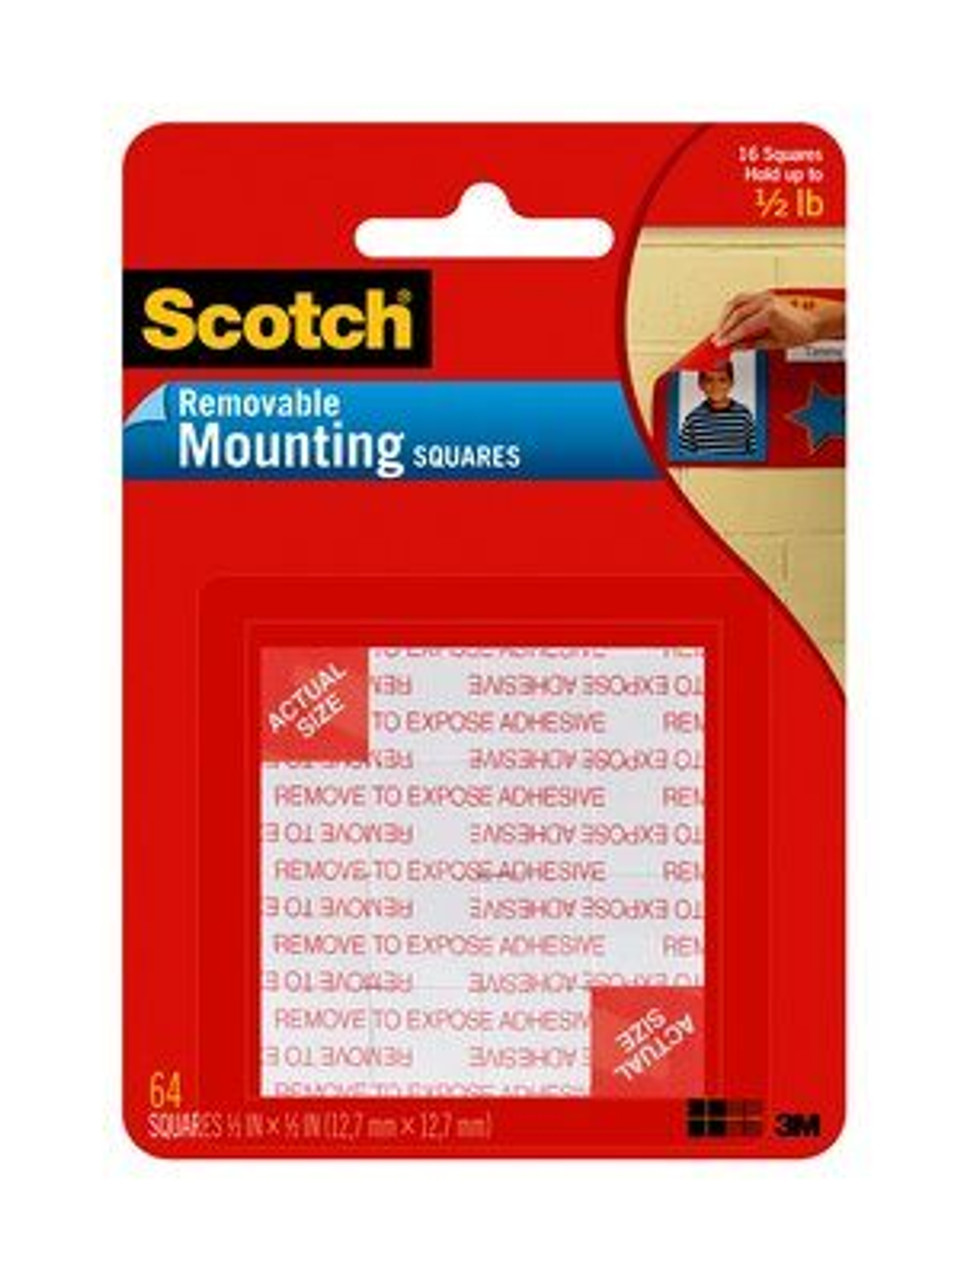 Scotch® Foam Mounting Squares 108-SML, 1/2 in x 1/2 in (12,7 mm x 12,7 mm) Removable, 64 Squares